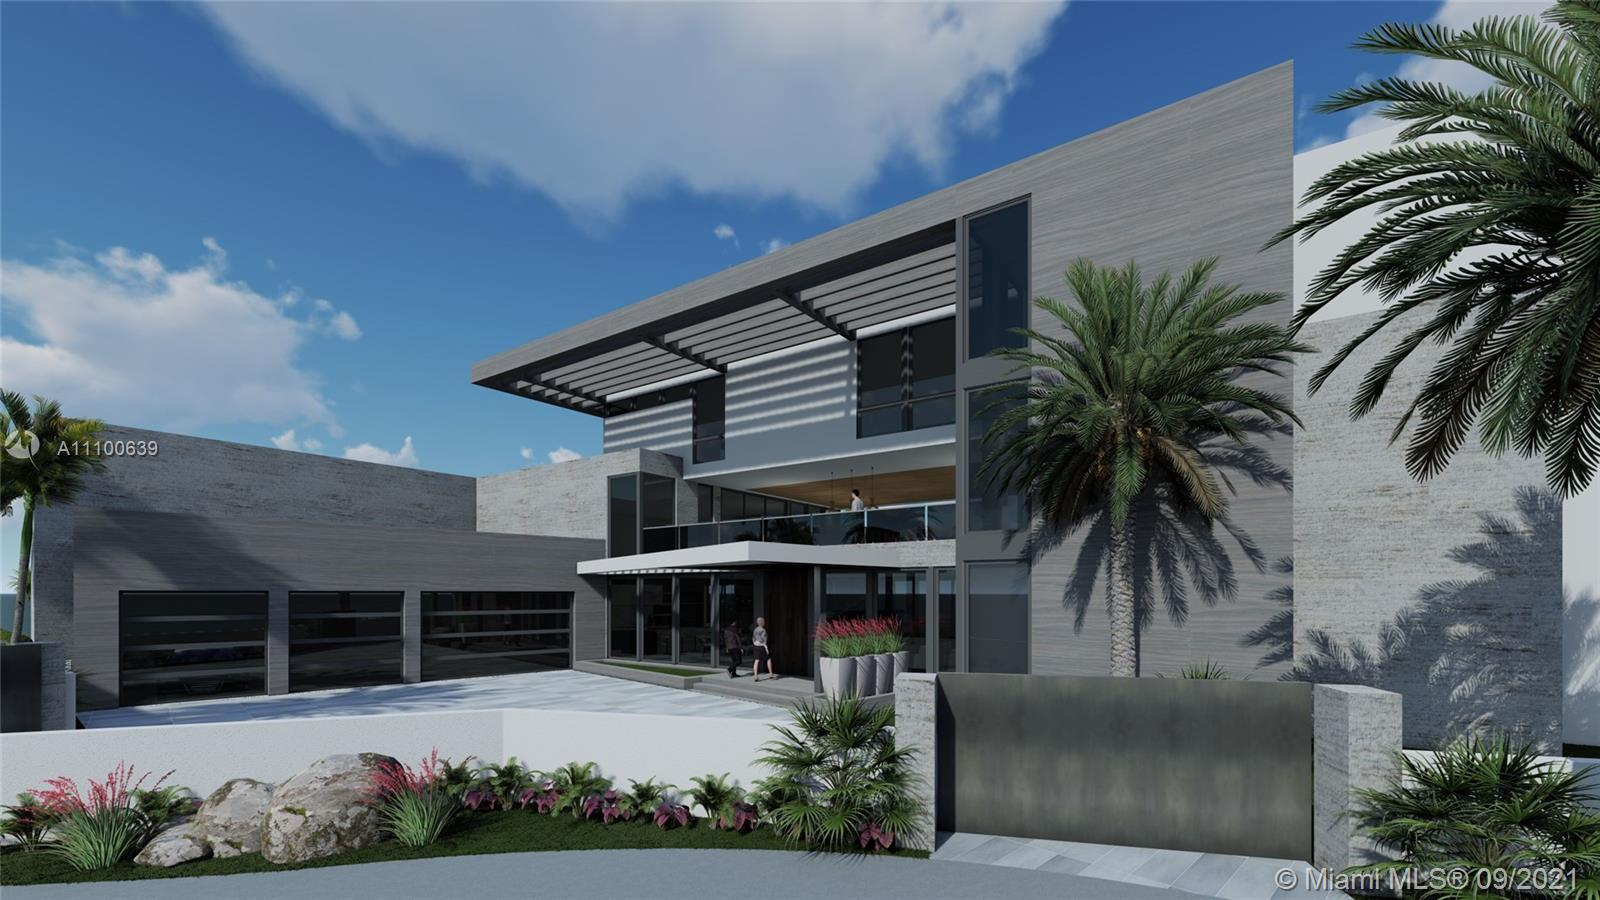 One of the best homes built in Fort Lauderdale. Designed by Affiniti Architects with 185' of waterfr